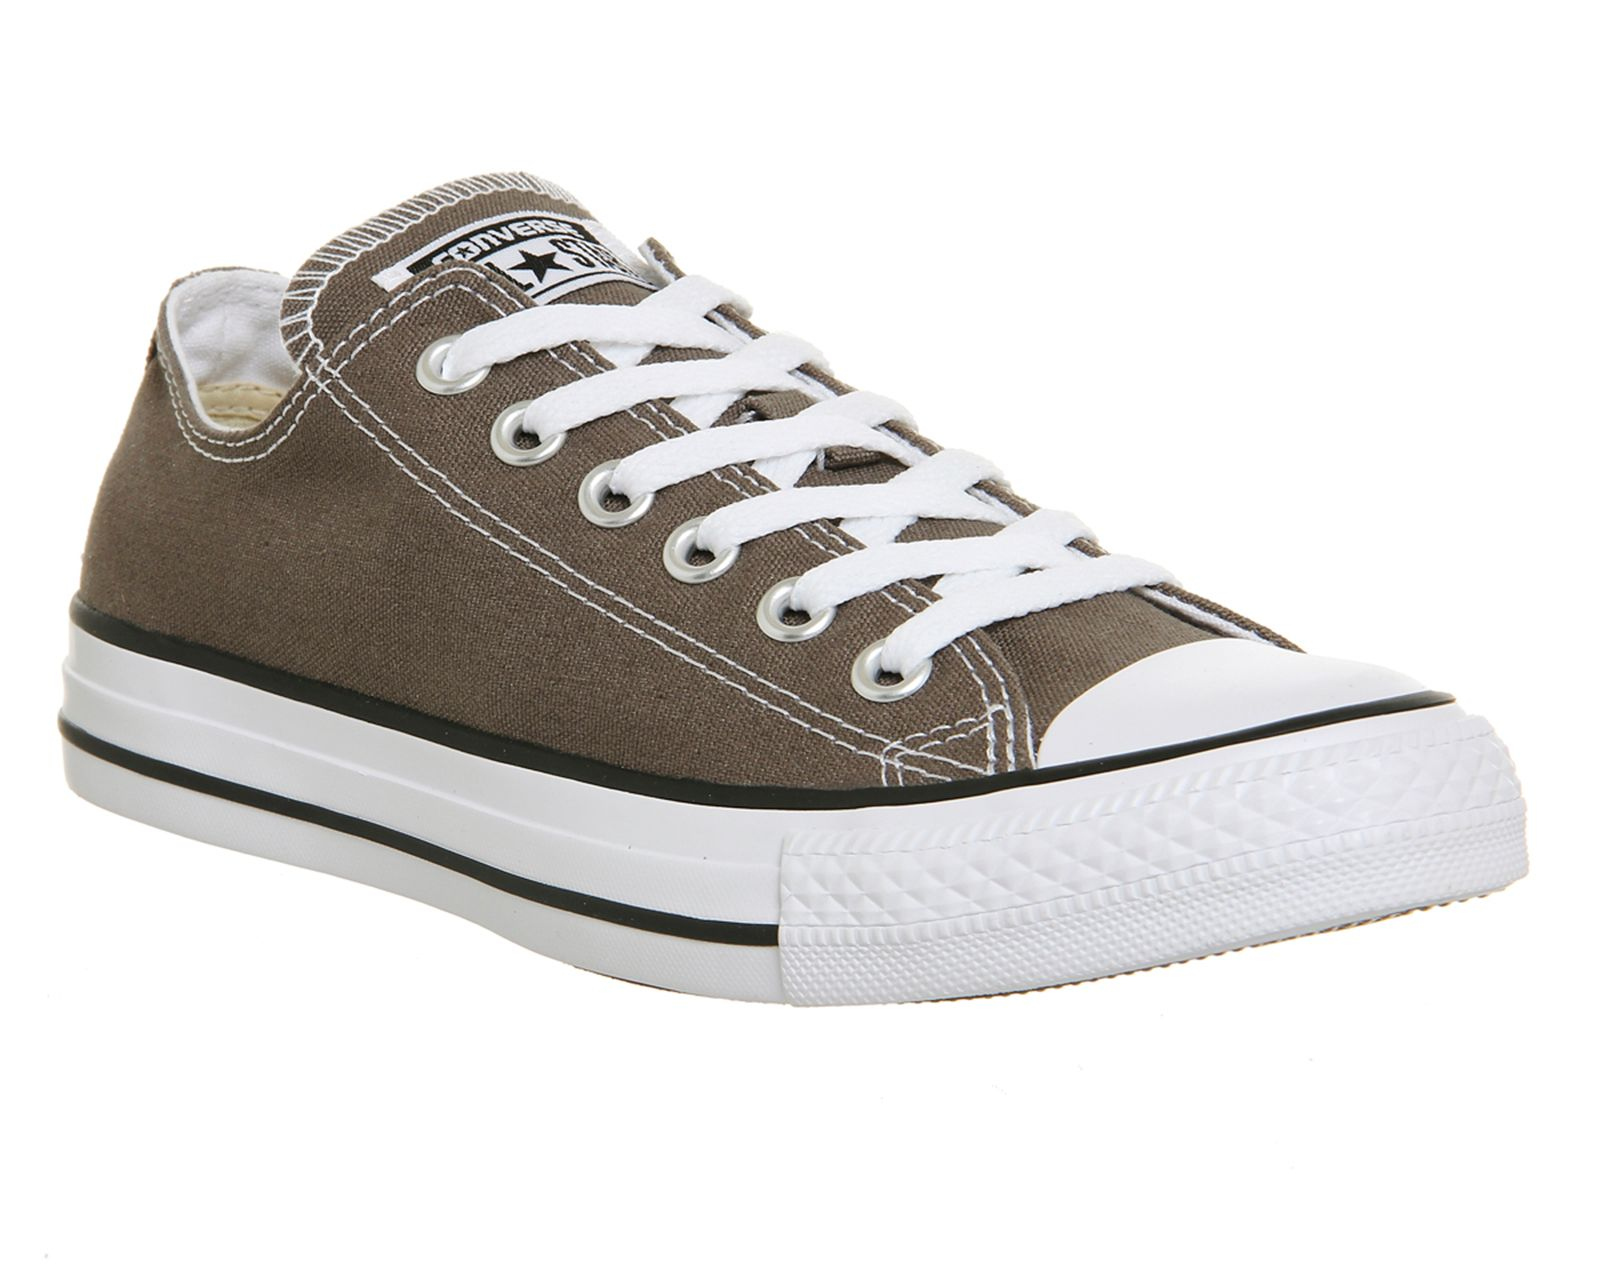 Converse All star low trainers, Charcoal